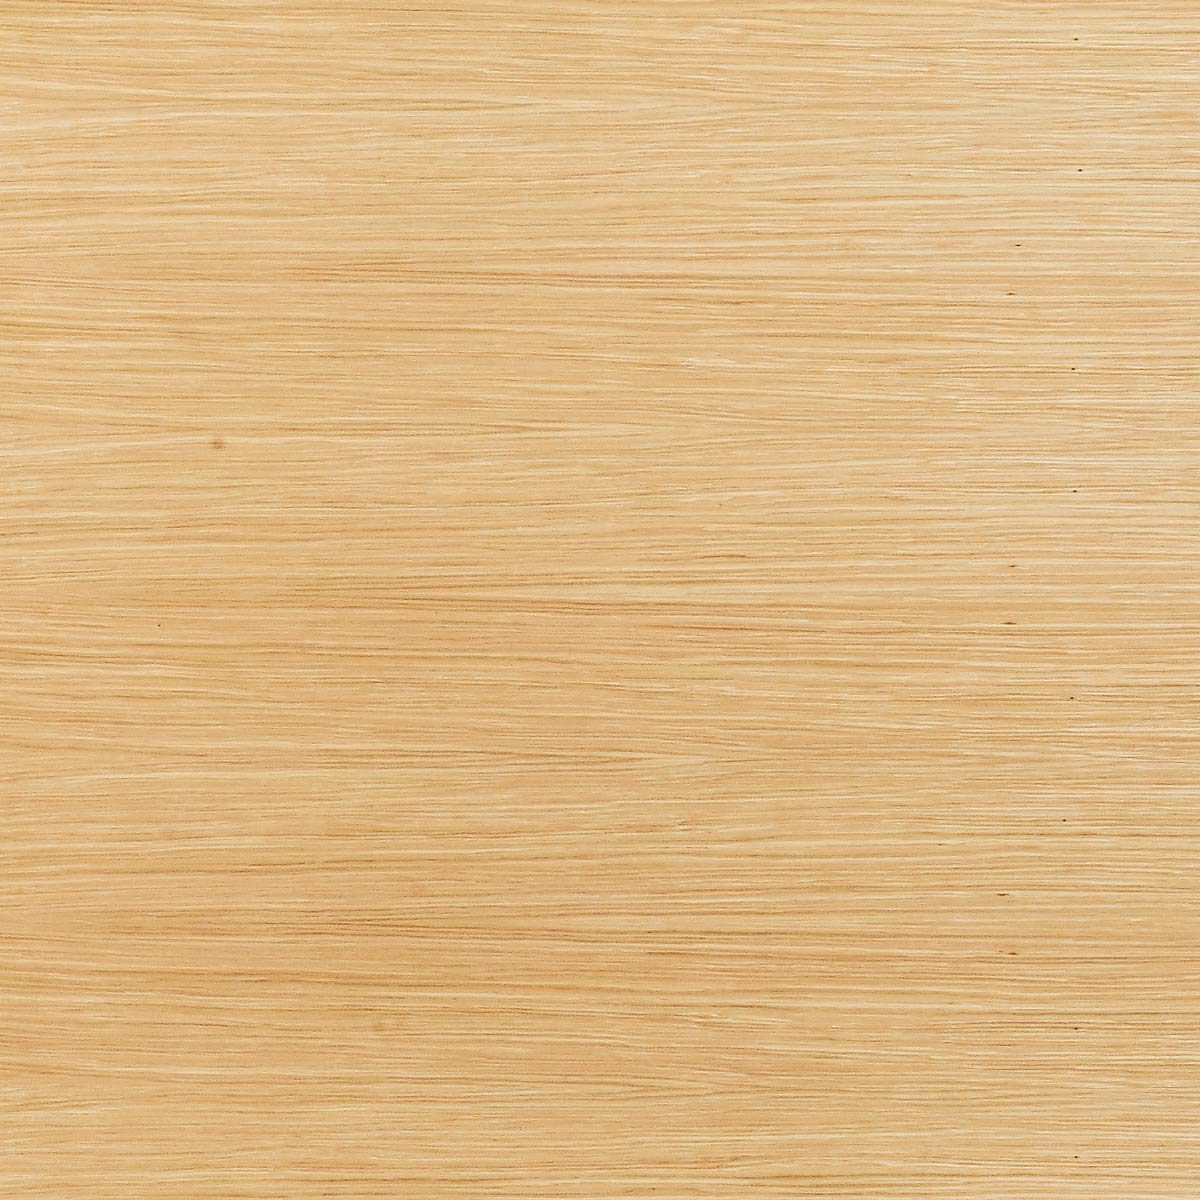 rift sawing plywood veneer grain